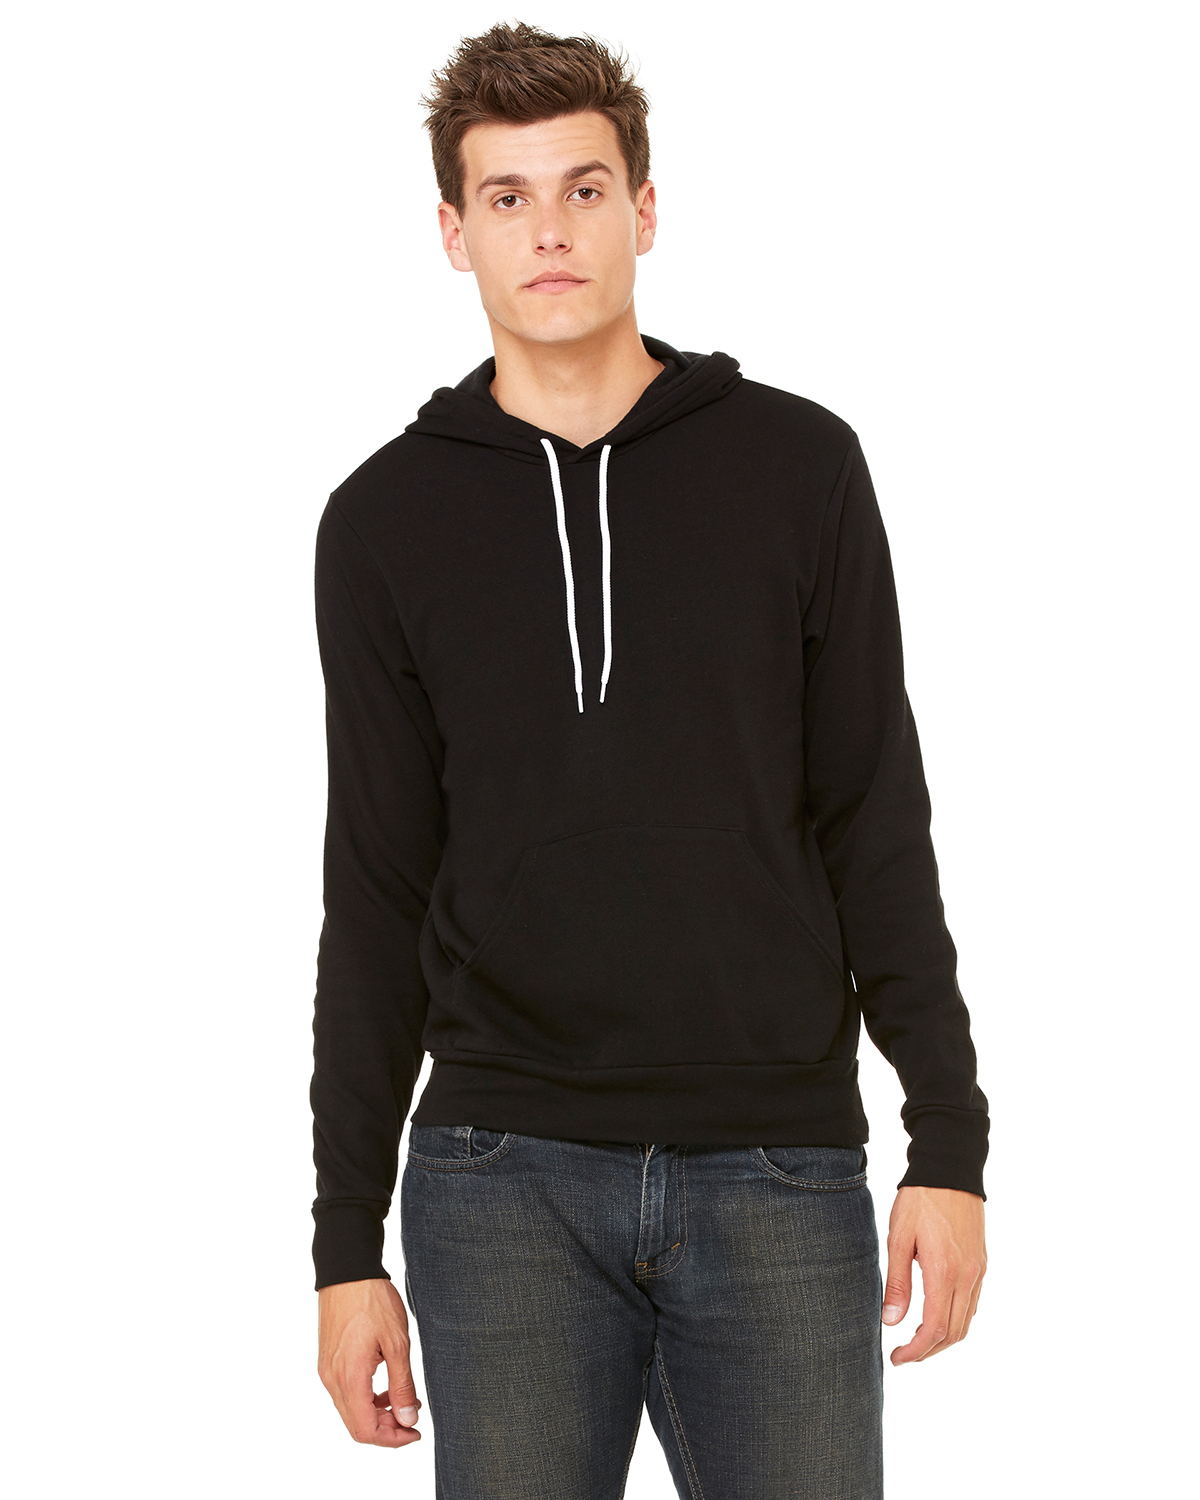 Canvas 3719 - Unisex Poly/Cotton Hooded Pullover Sweatshirt